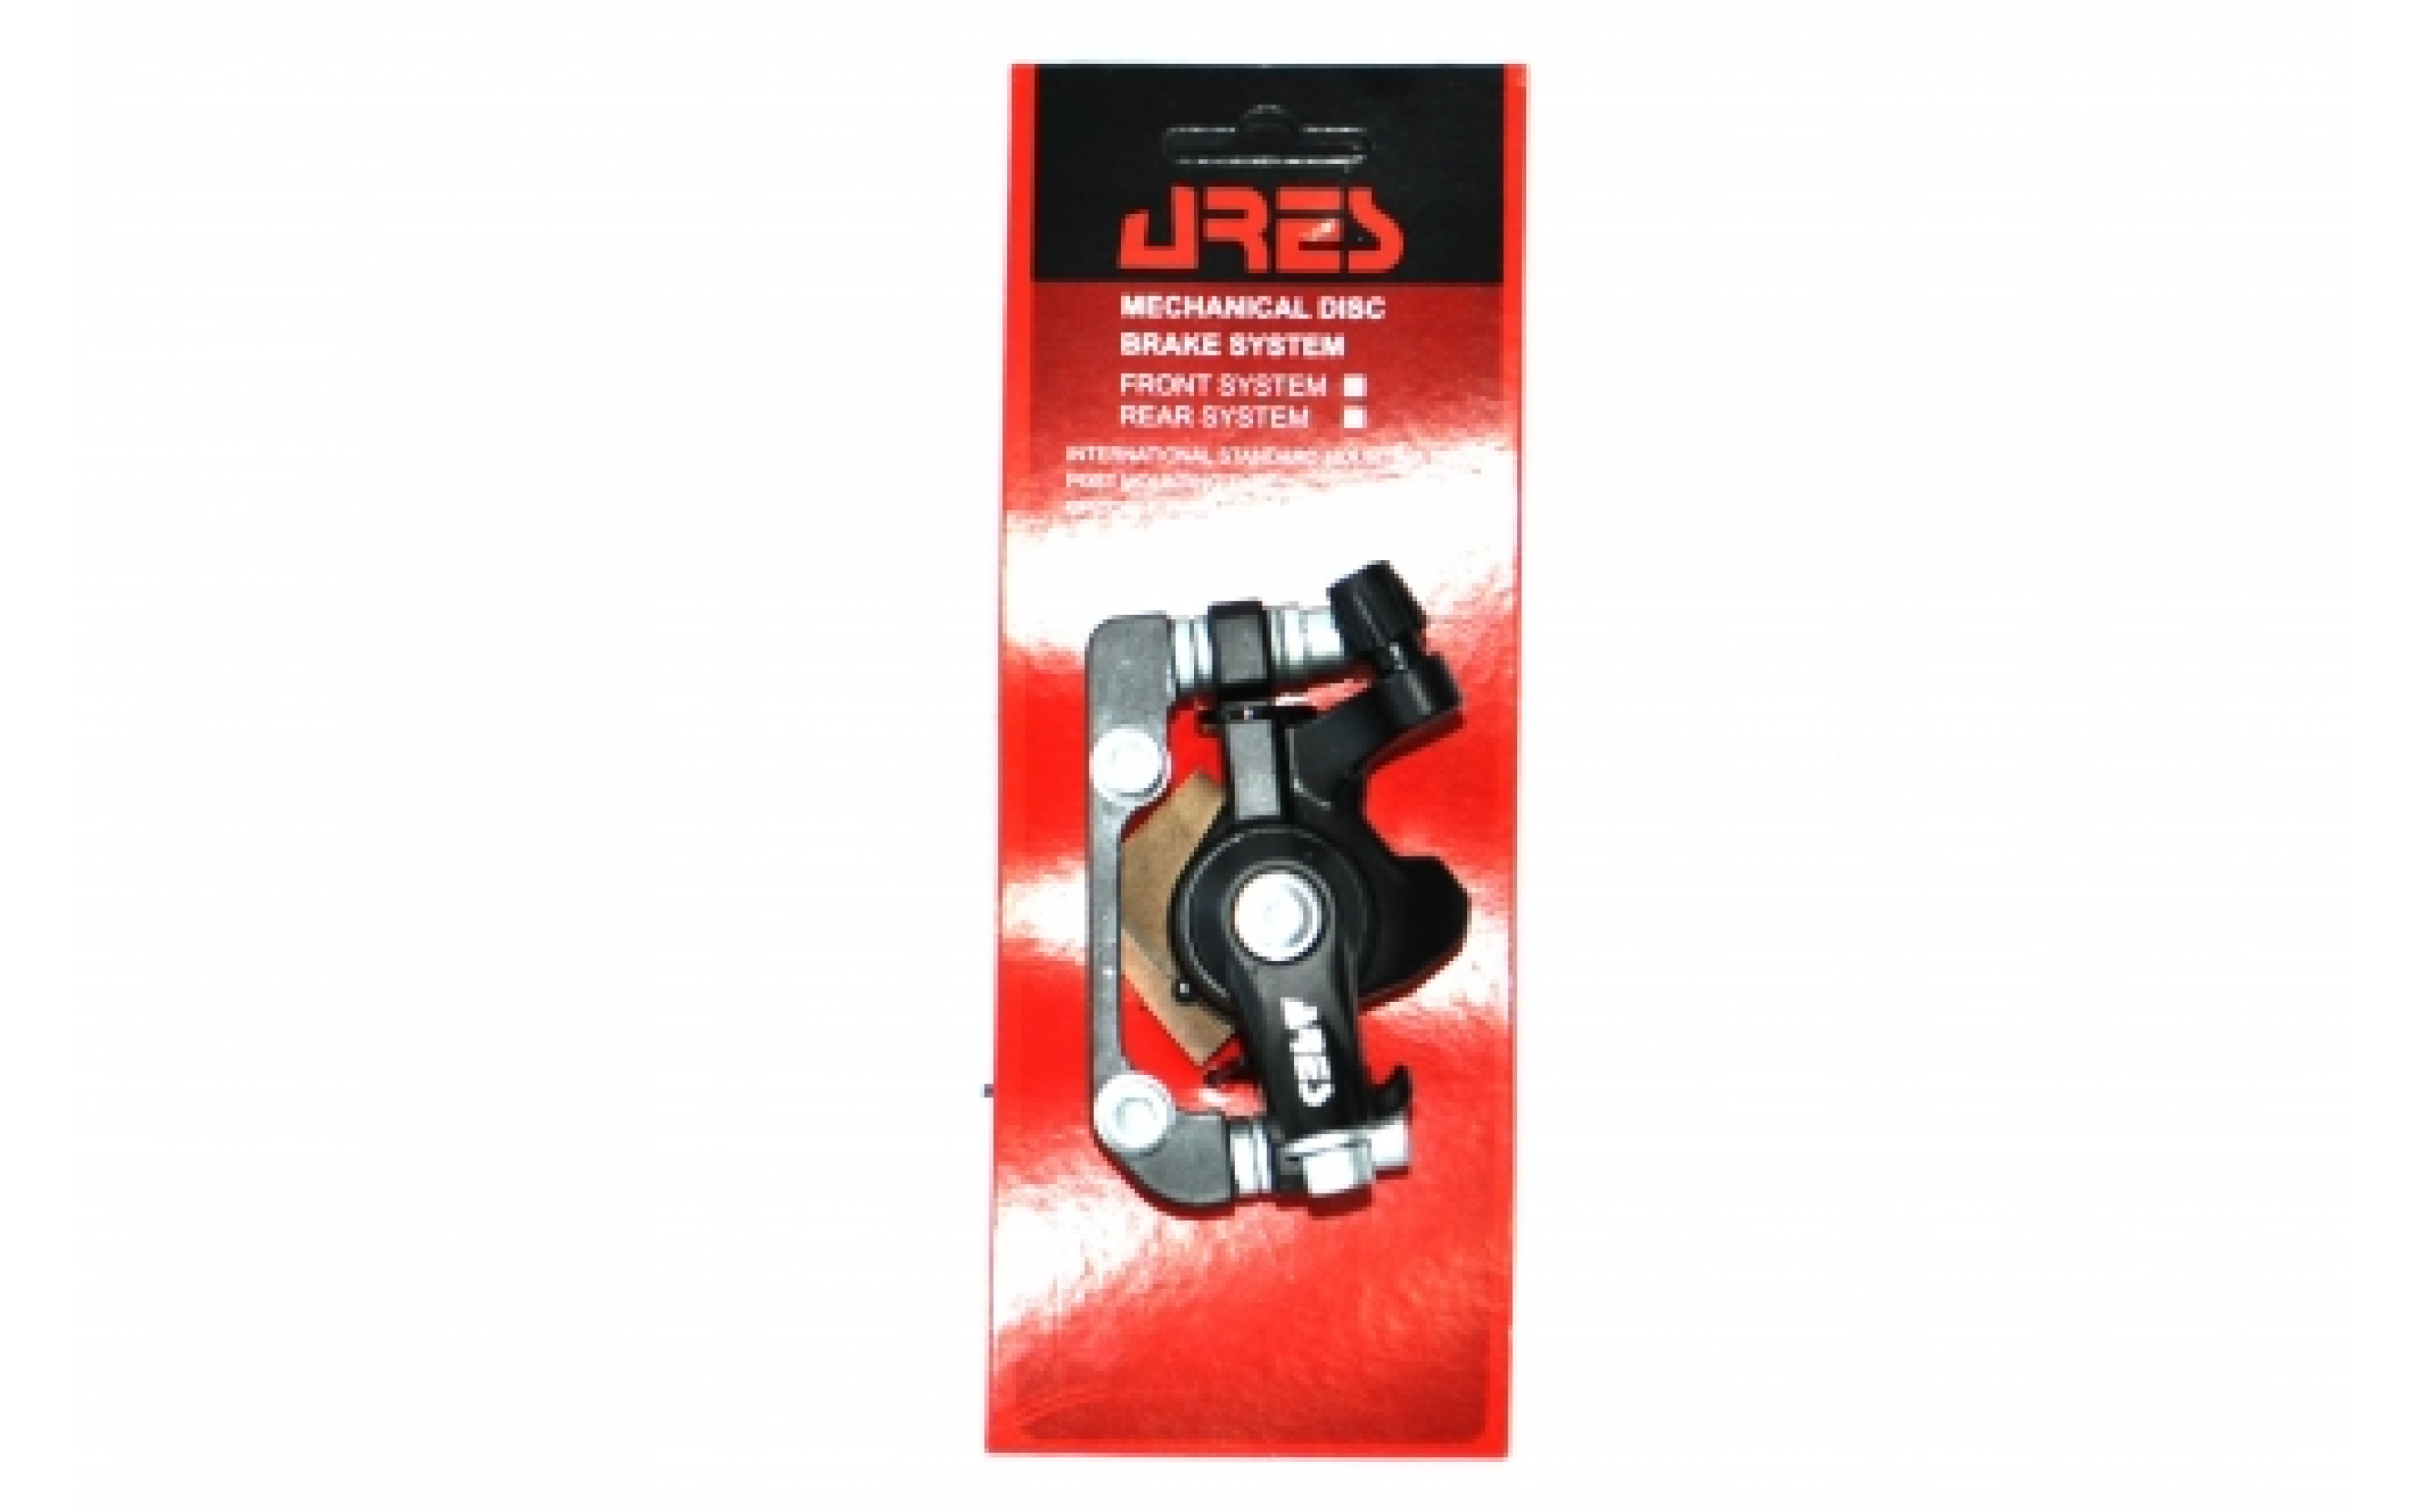 Disk brakes ARES MDA08 IS-type non rotor rear, ARES, Brakes.